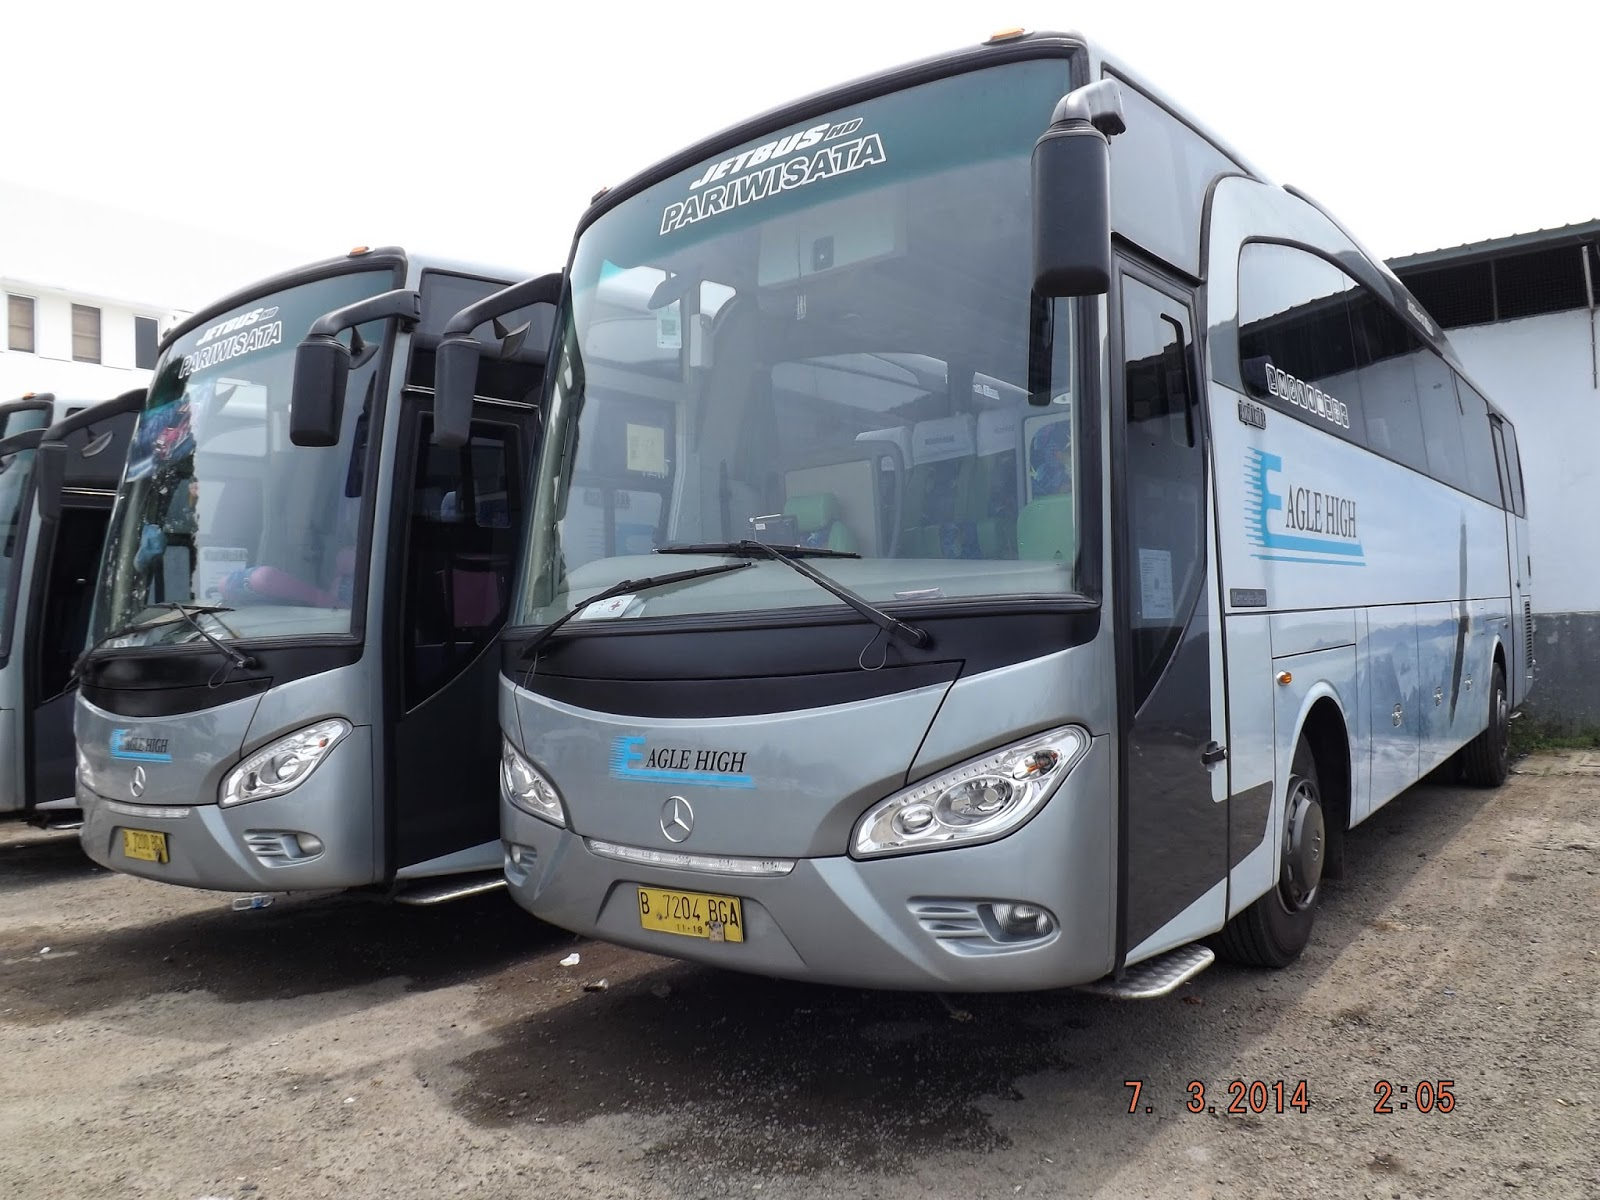 Bus pariwisata william